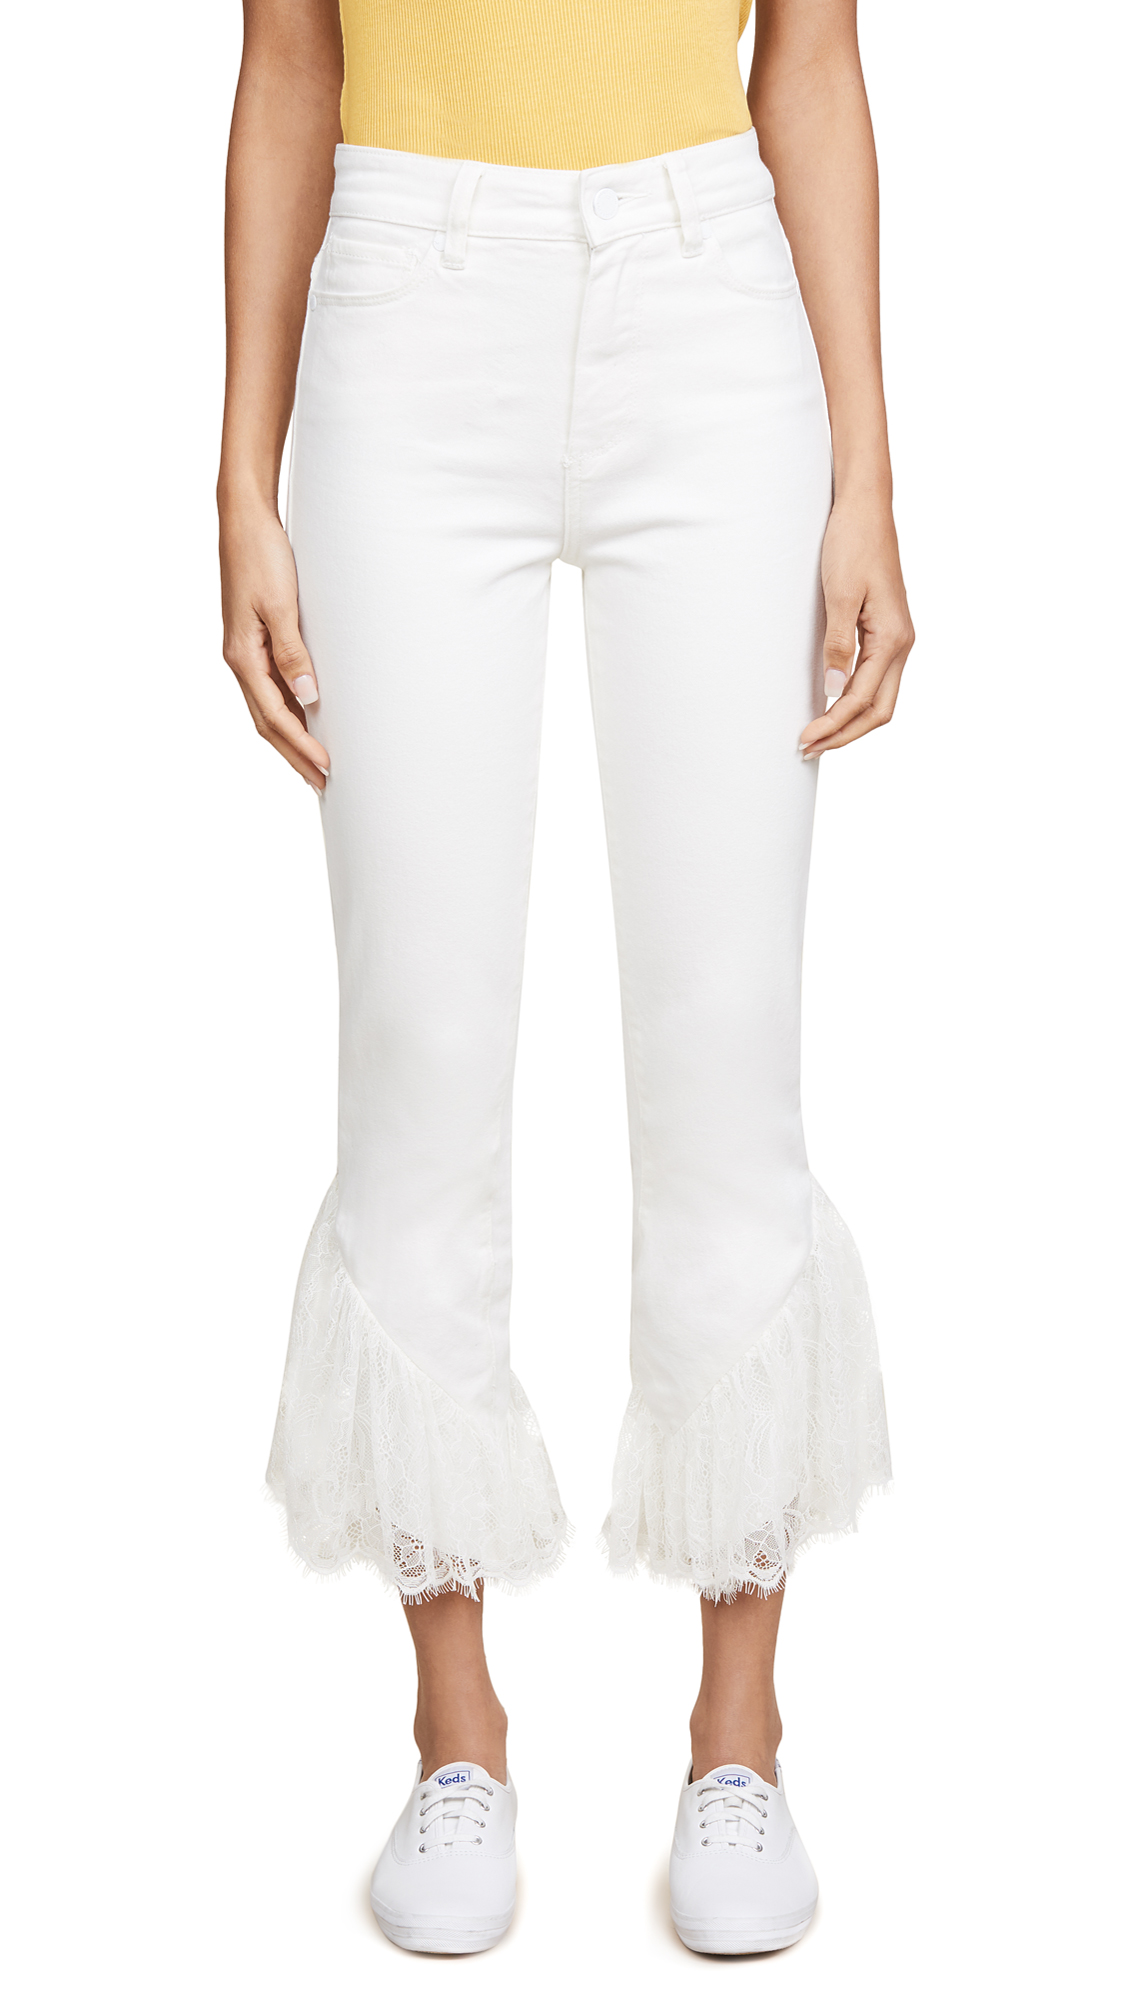 "PAIGE Hoxton Straight Ankle with Lace 27 Jeans"" In Poodle White"